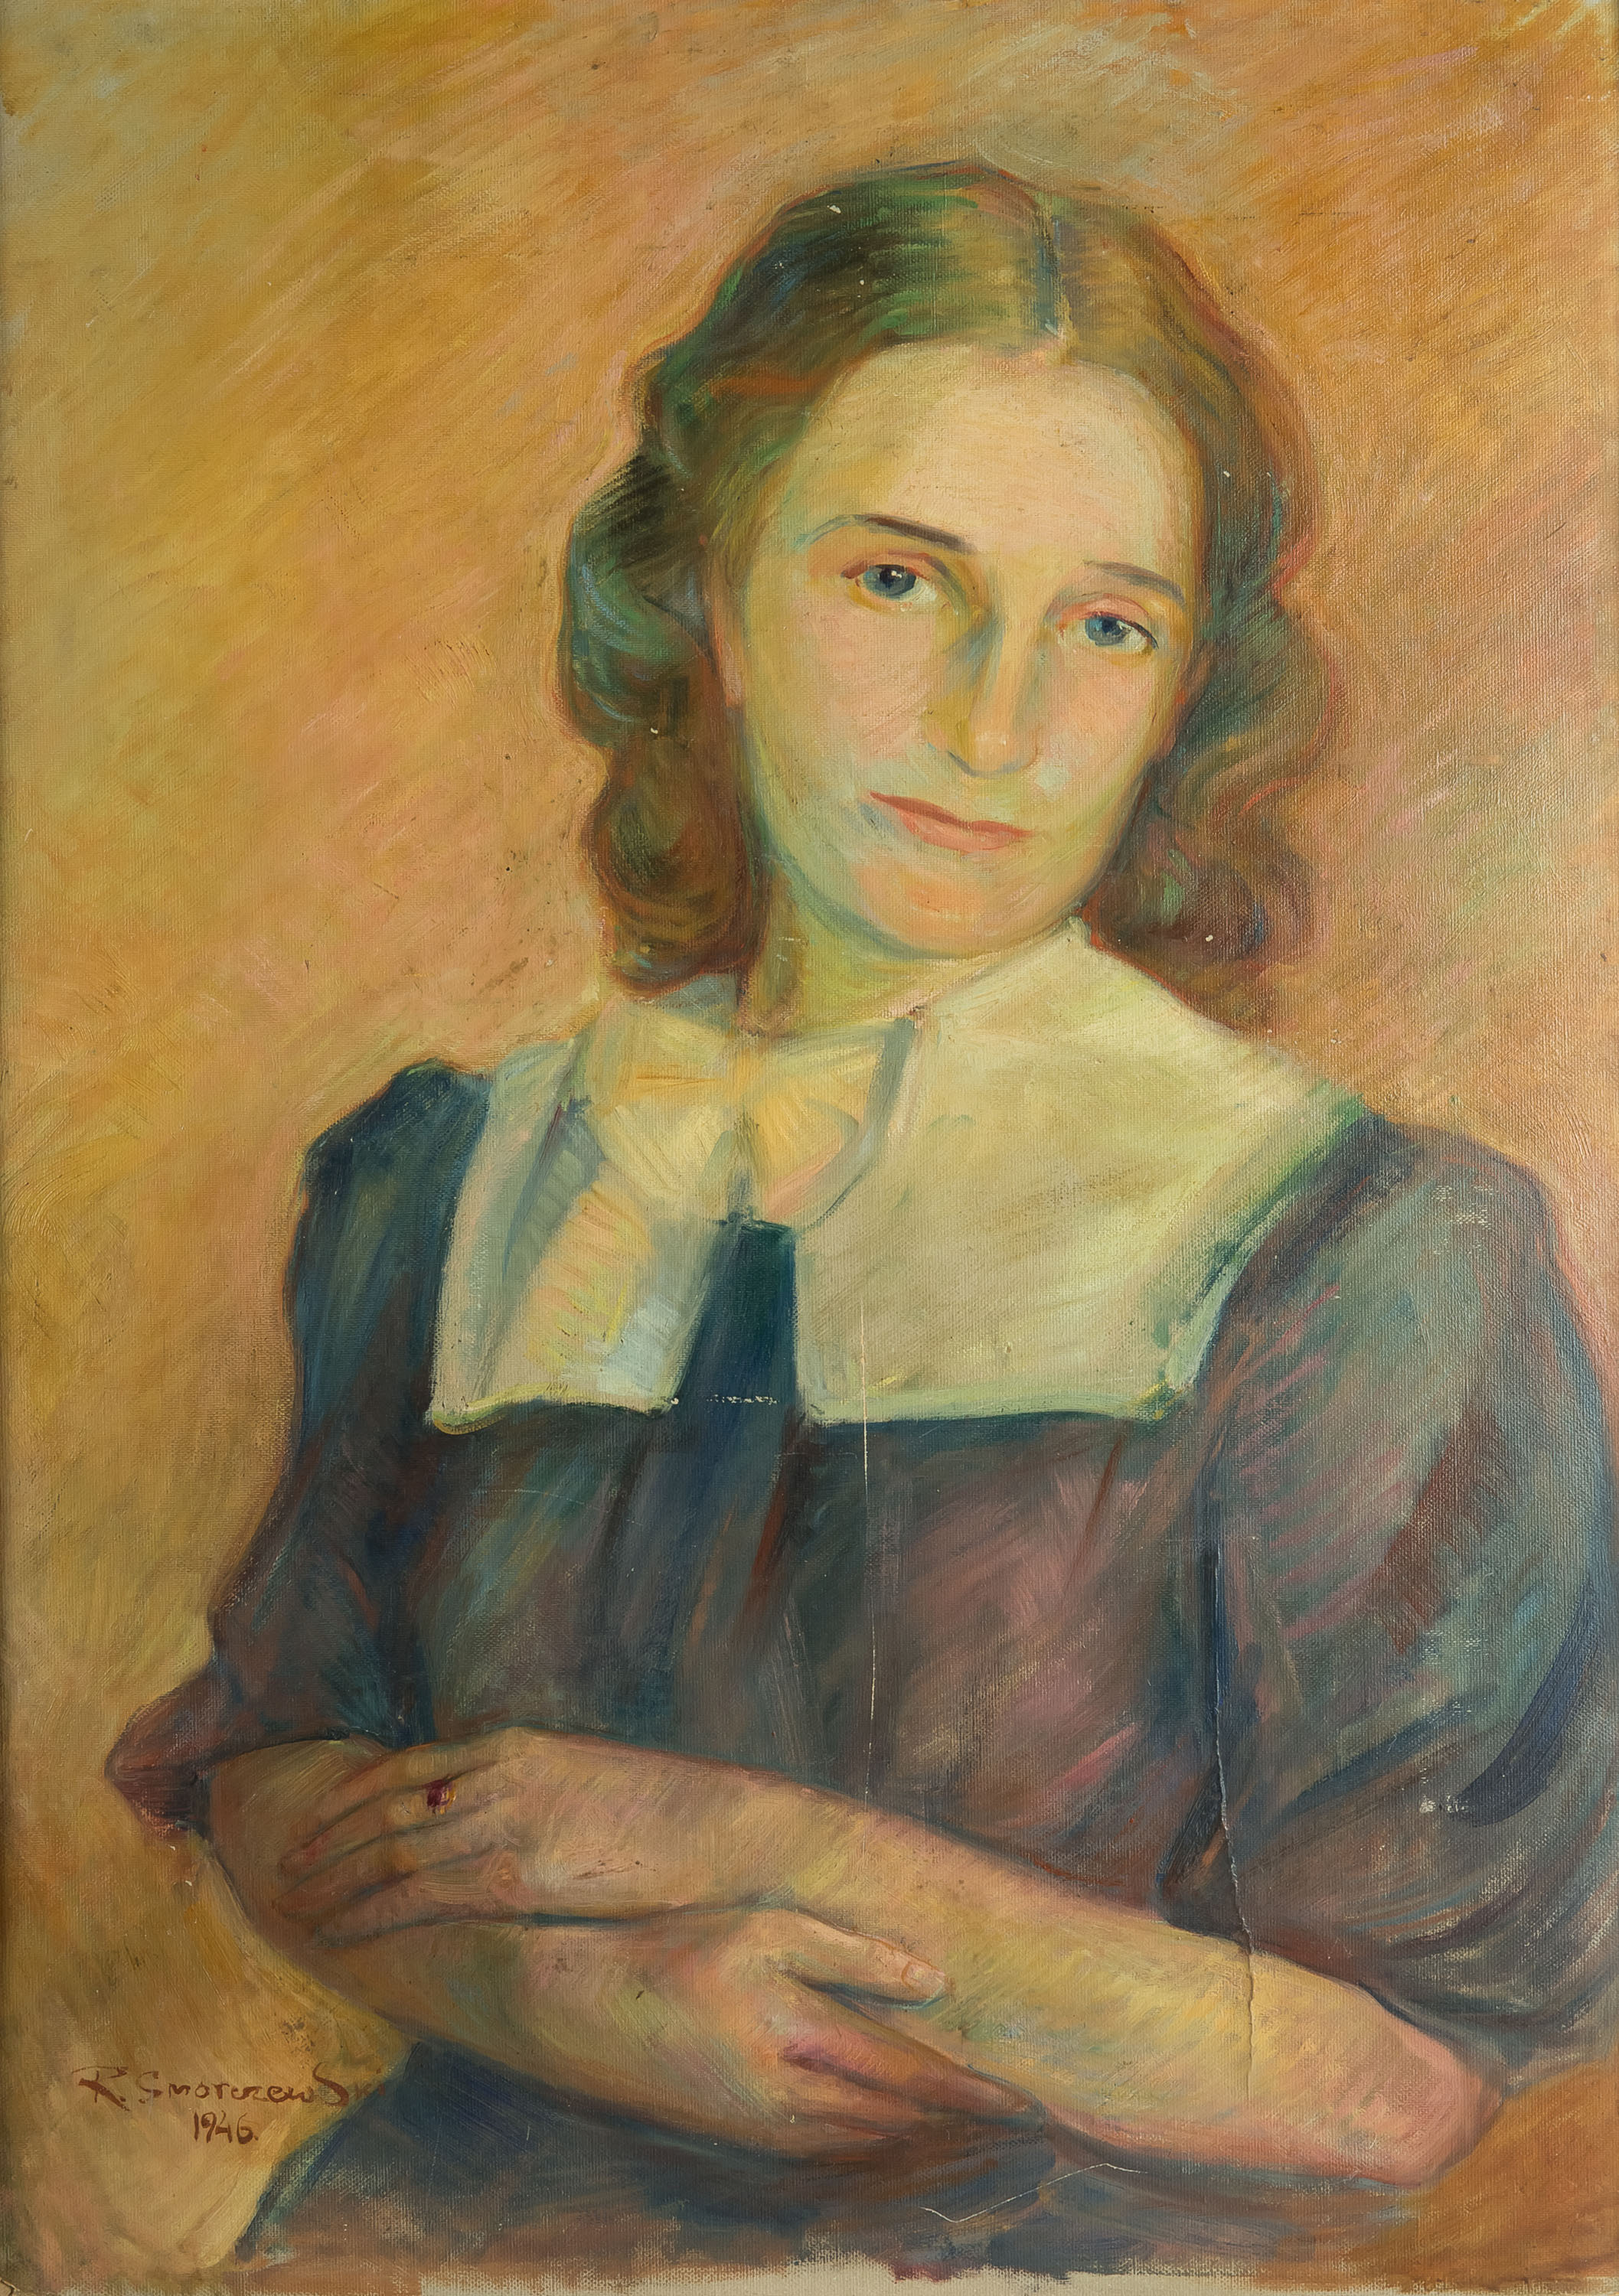 Portret siostry artysty, 1946 r.